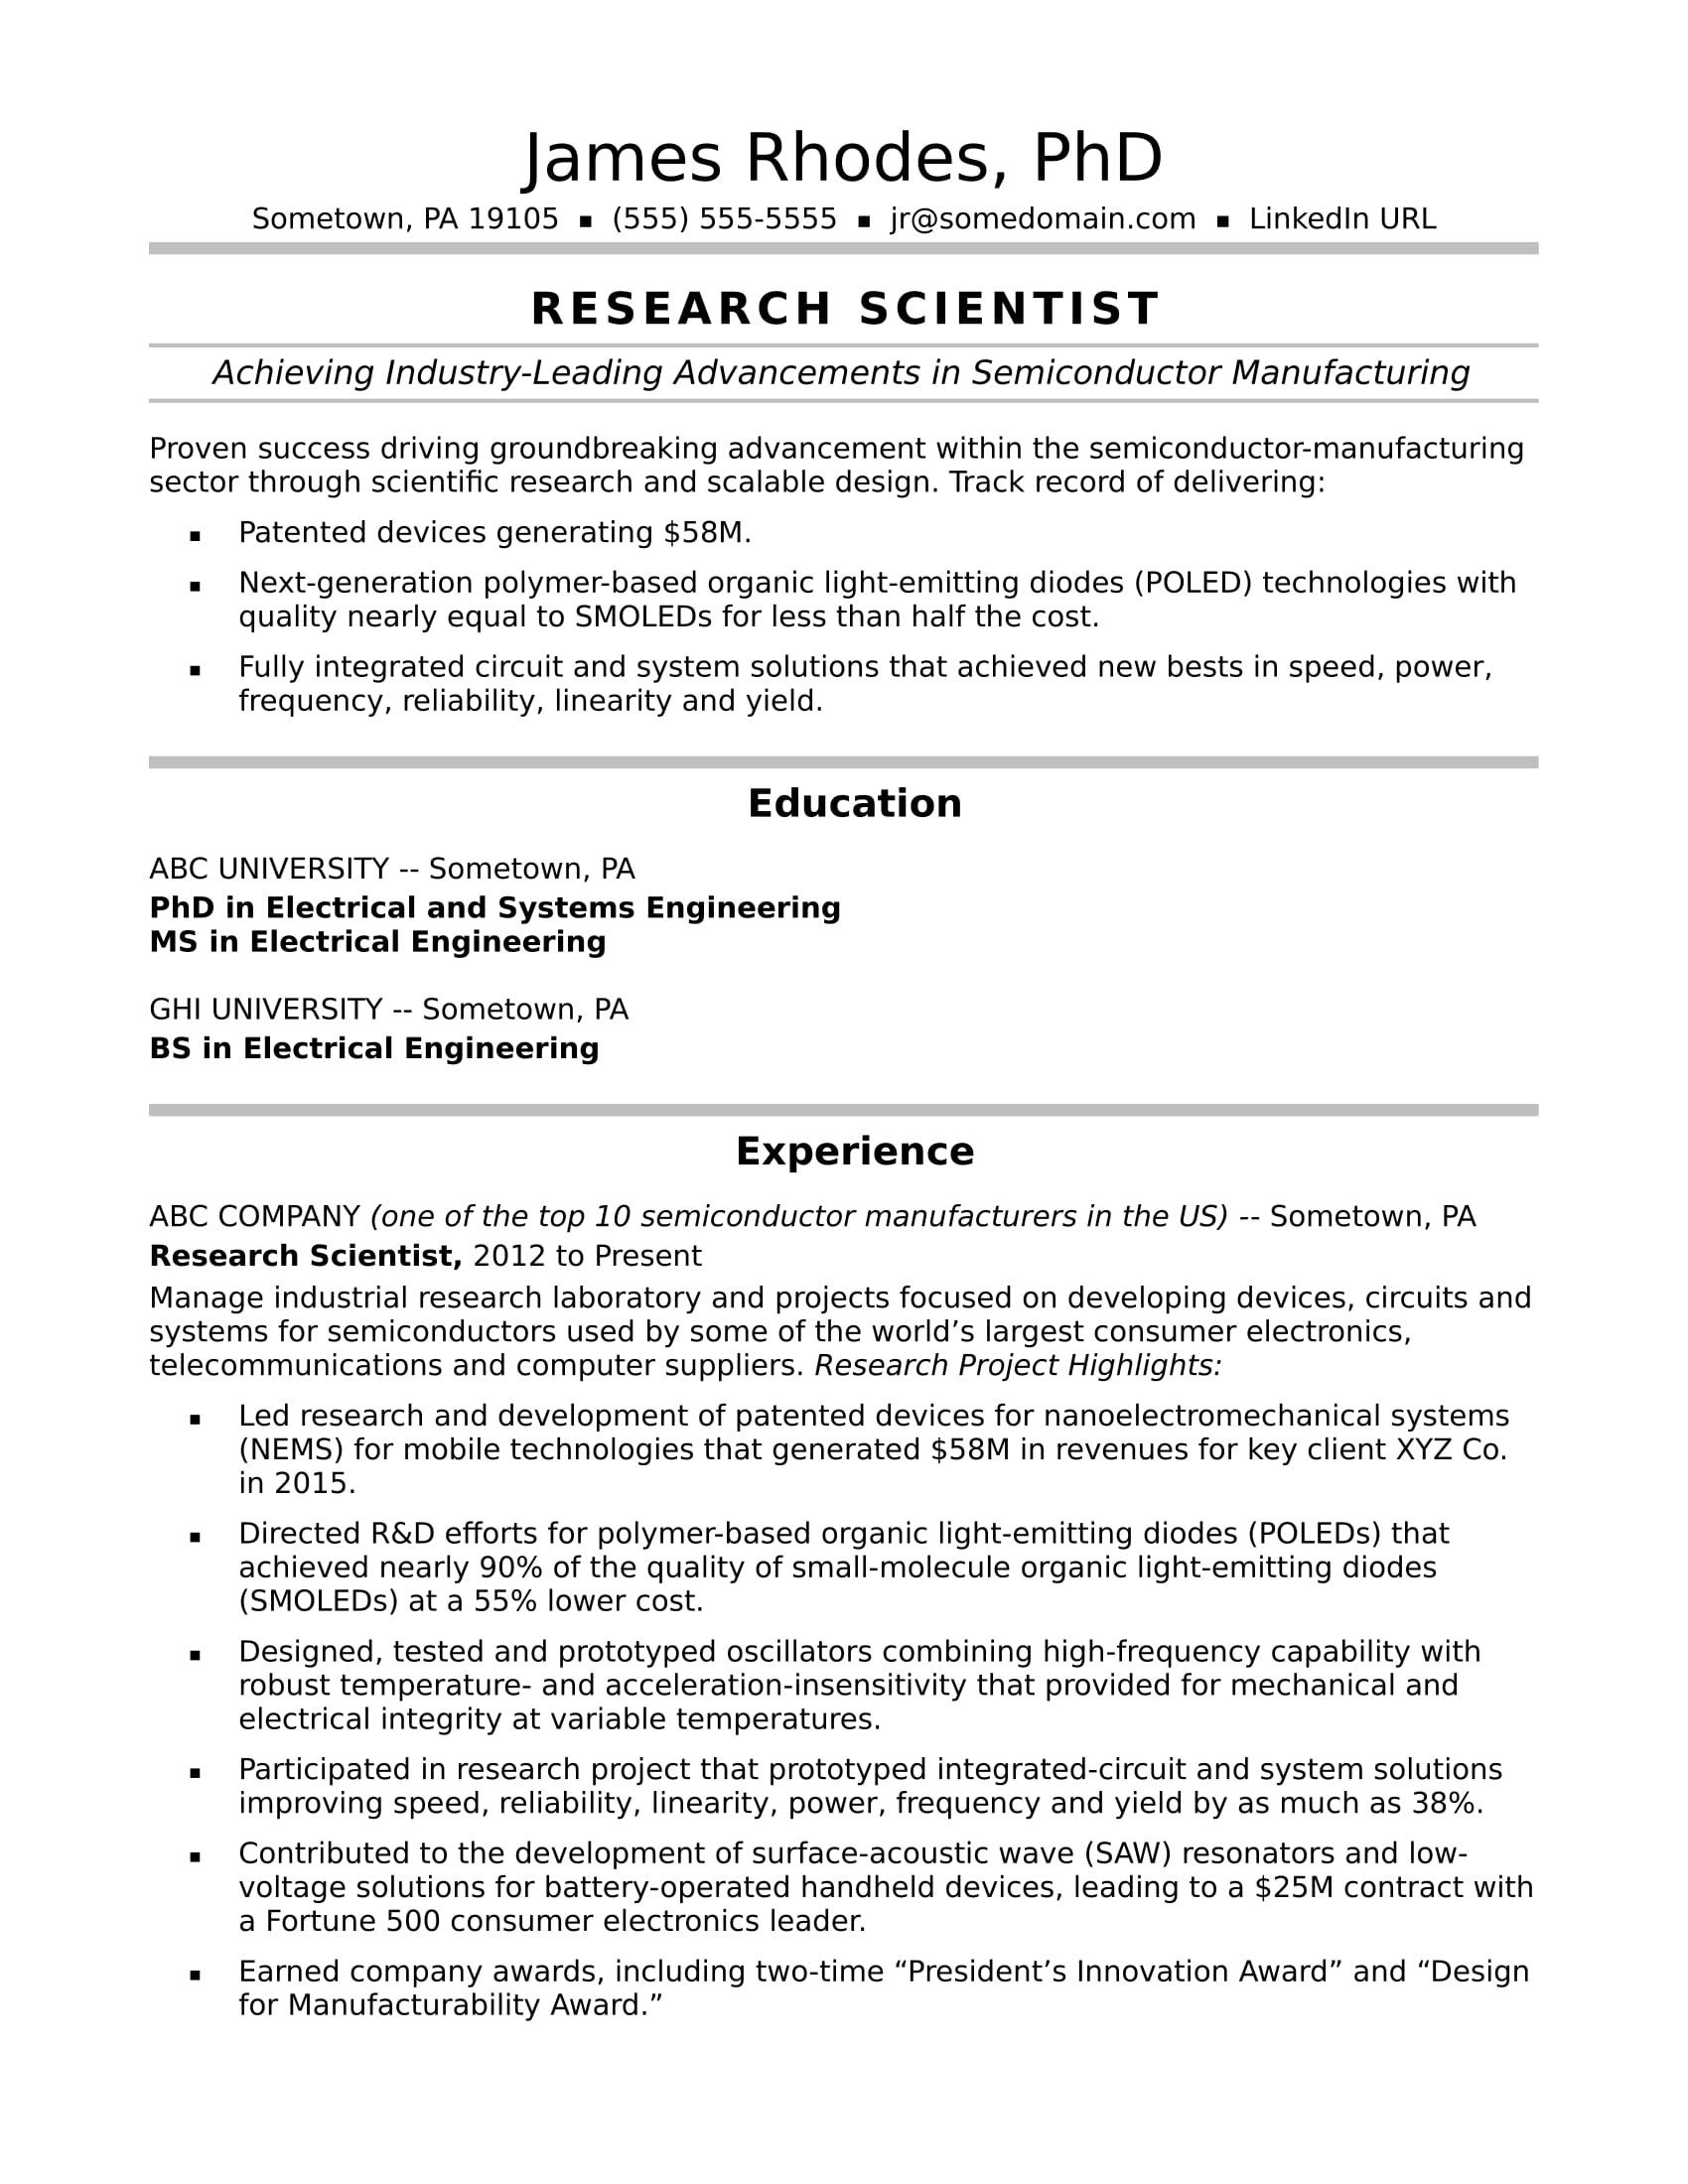 research scientist resume sample monster science midlevel loadrunner experience customer Resume Science Research Resume